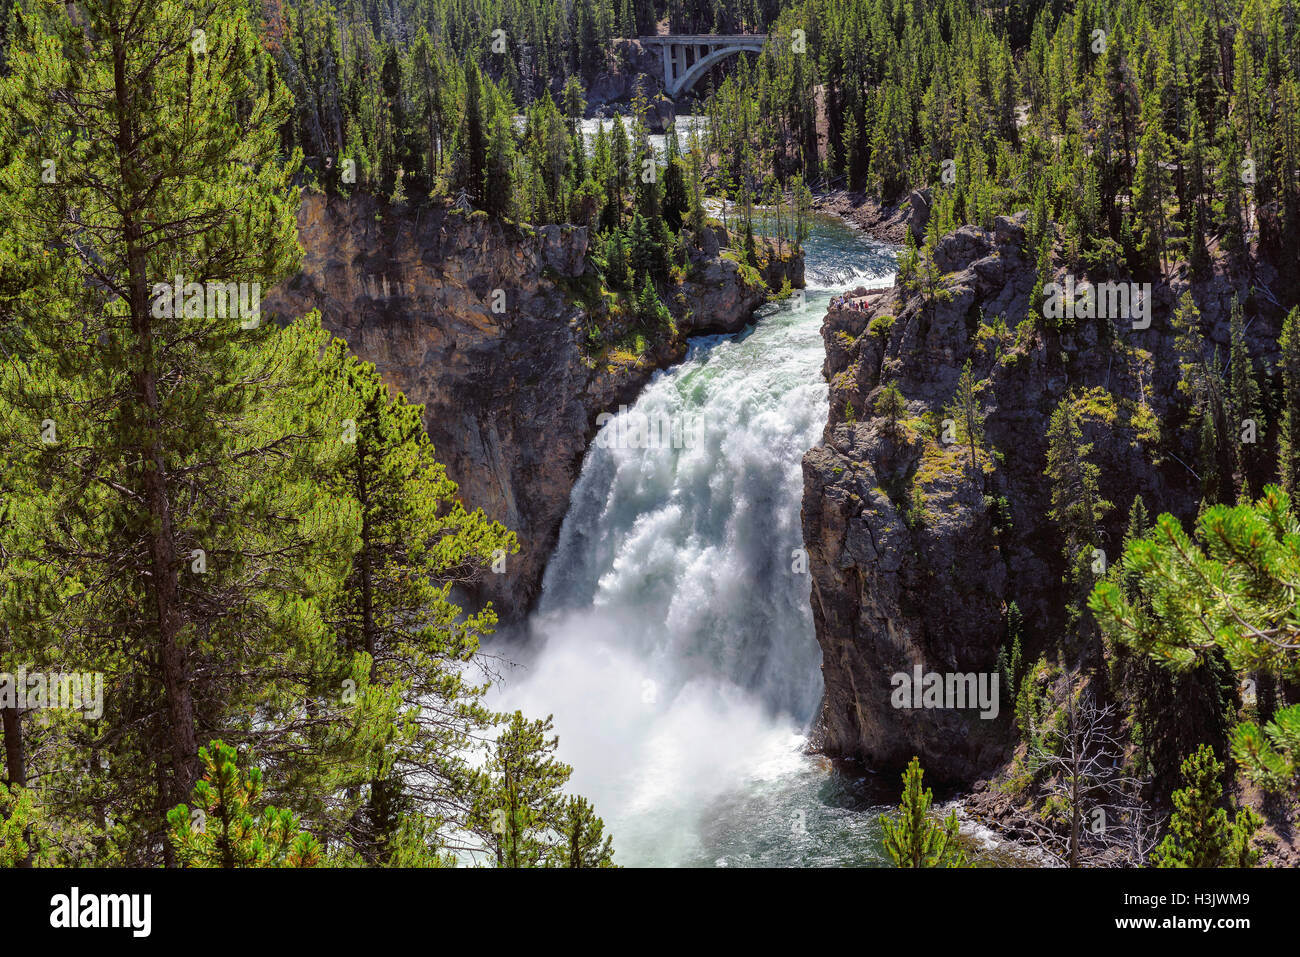 Falls at Grand Canyon of the Yellowstone National Park - Stock Image